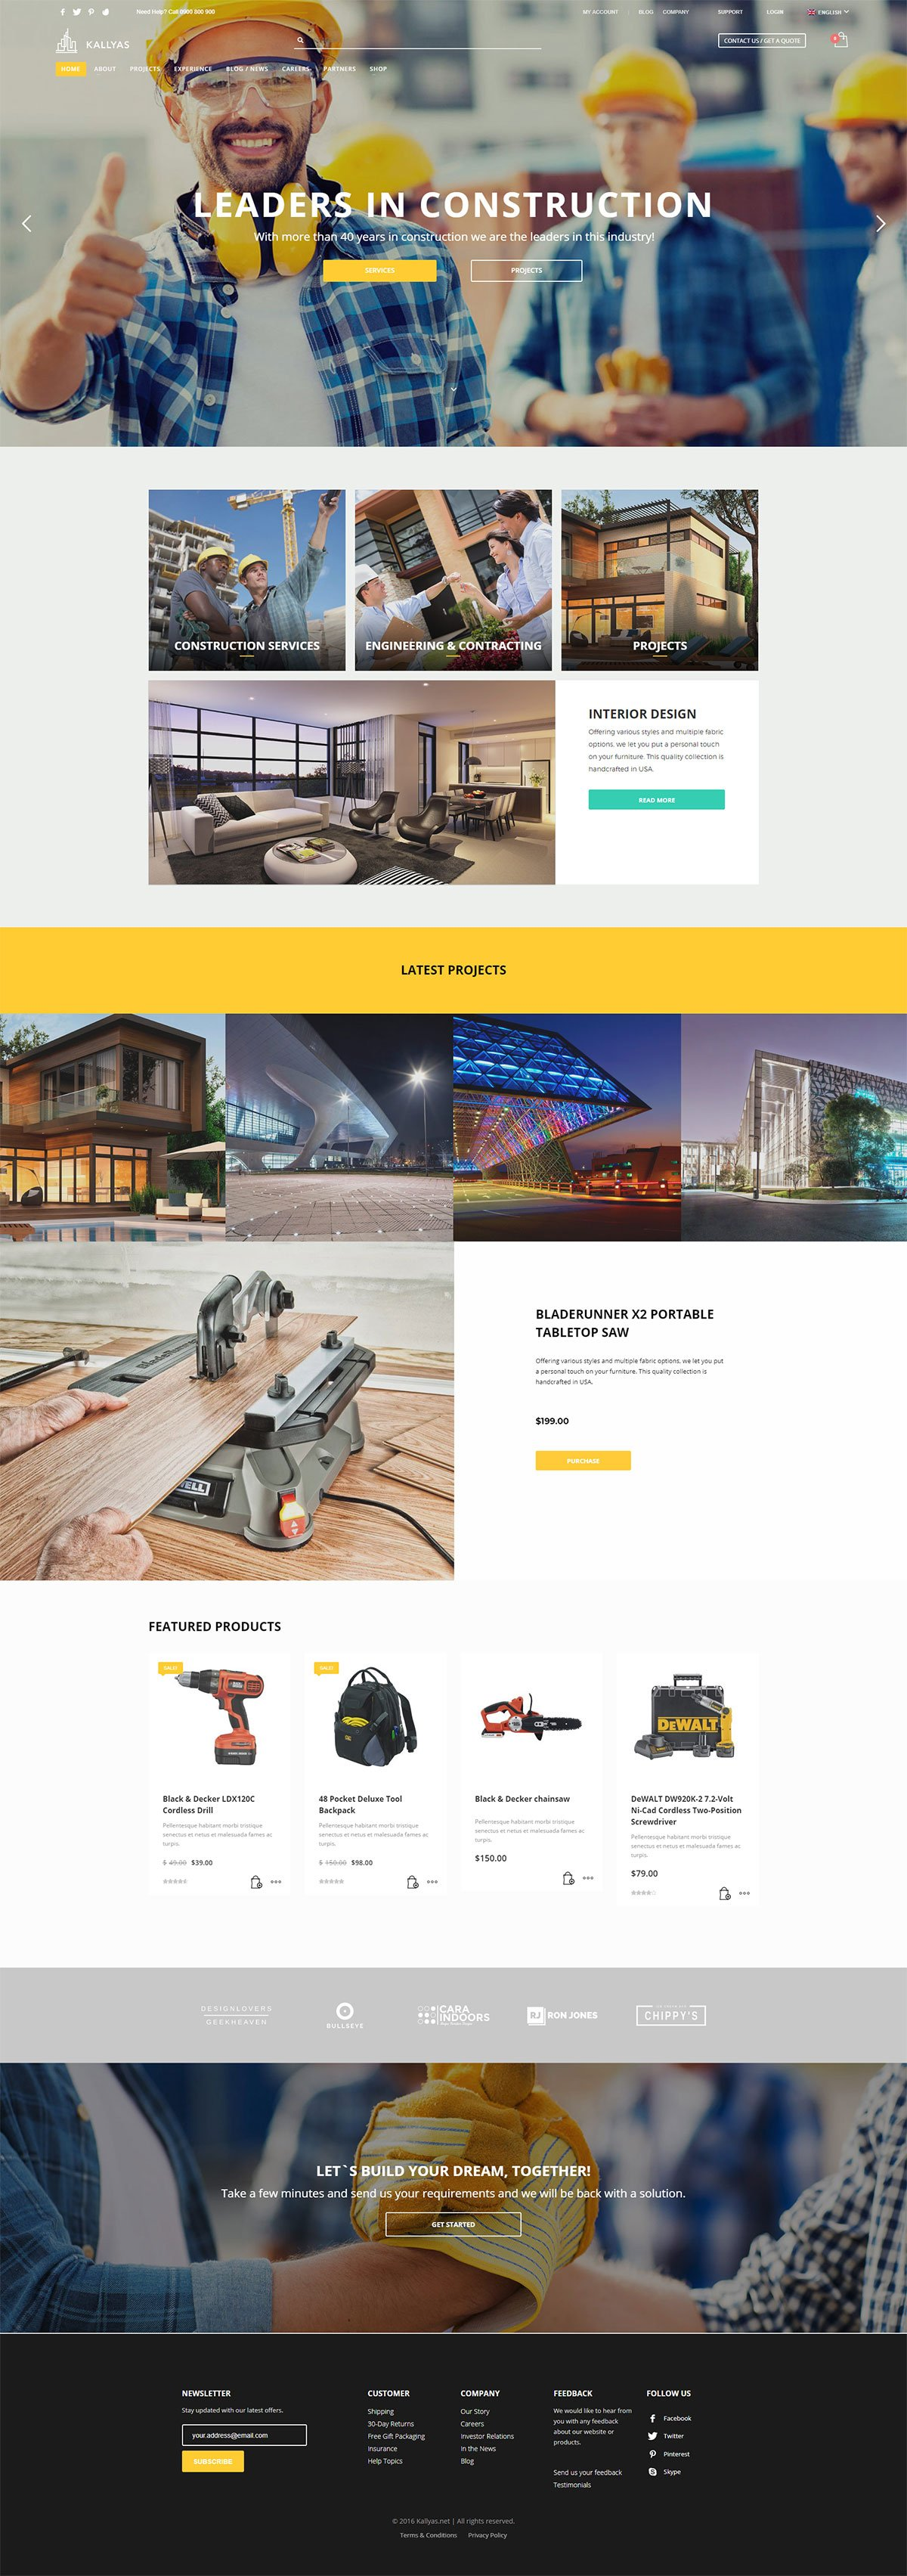 Construction - Free PSD Template